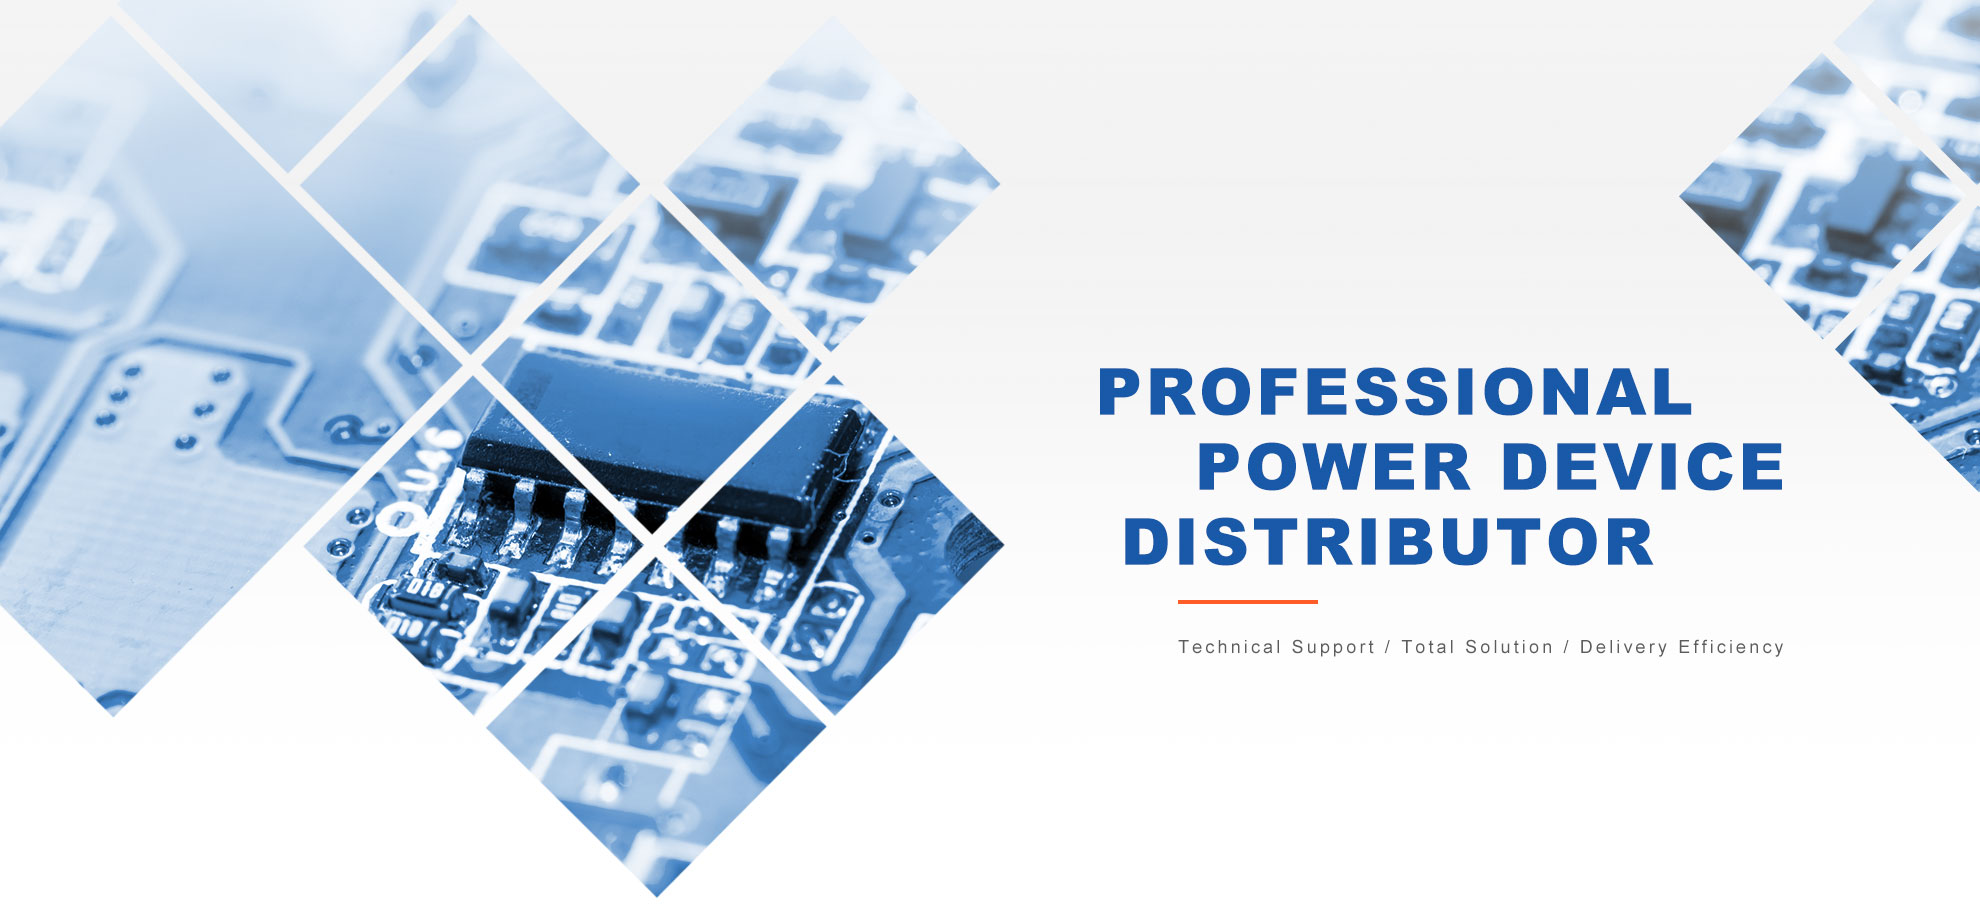 PROFESSIONAL POWER DEVICE DISTRIBUTOR